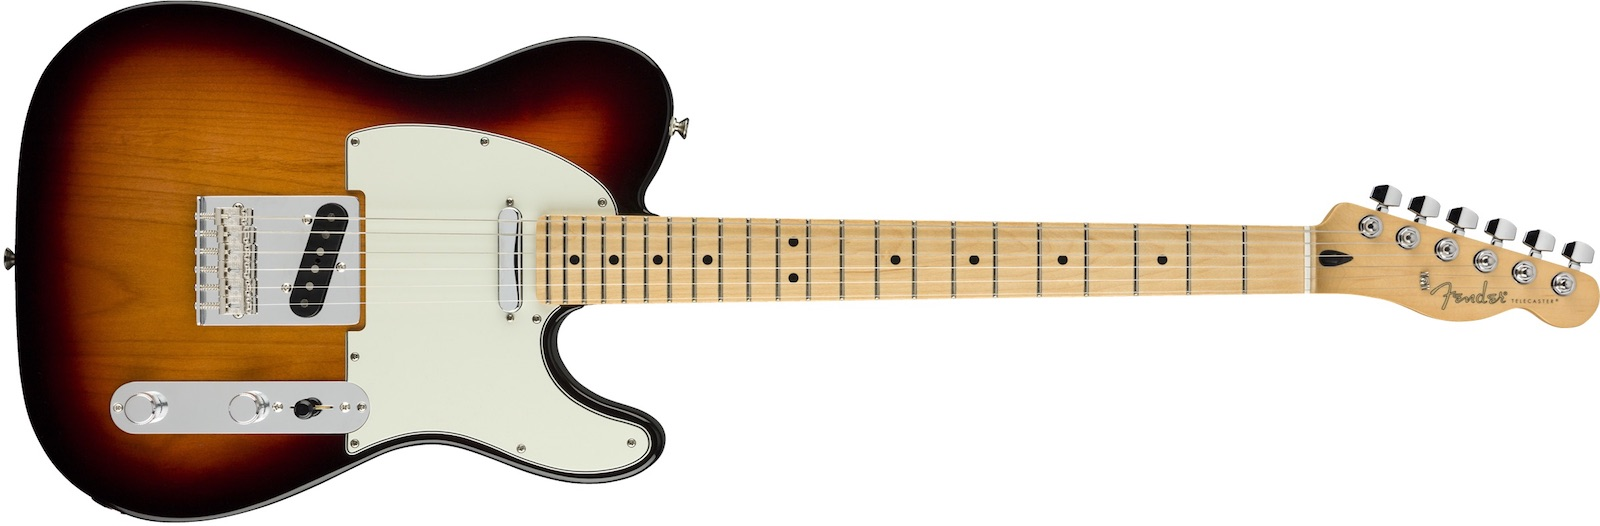 【新品】Fender Player Telecaster Maple Fingerboard ~3-Color Sunburst~【お取り寄せ】【送料無料】【池袋店】